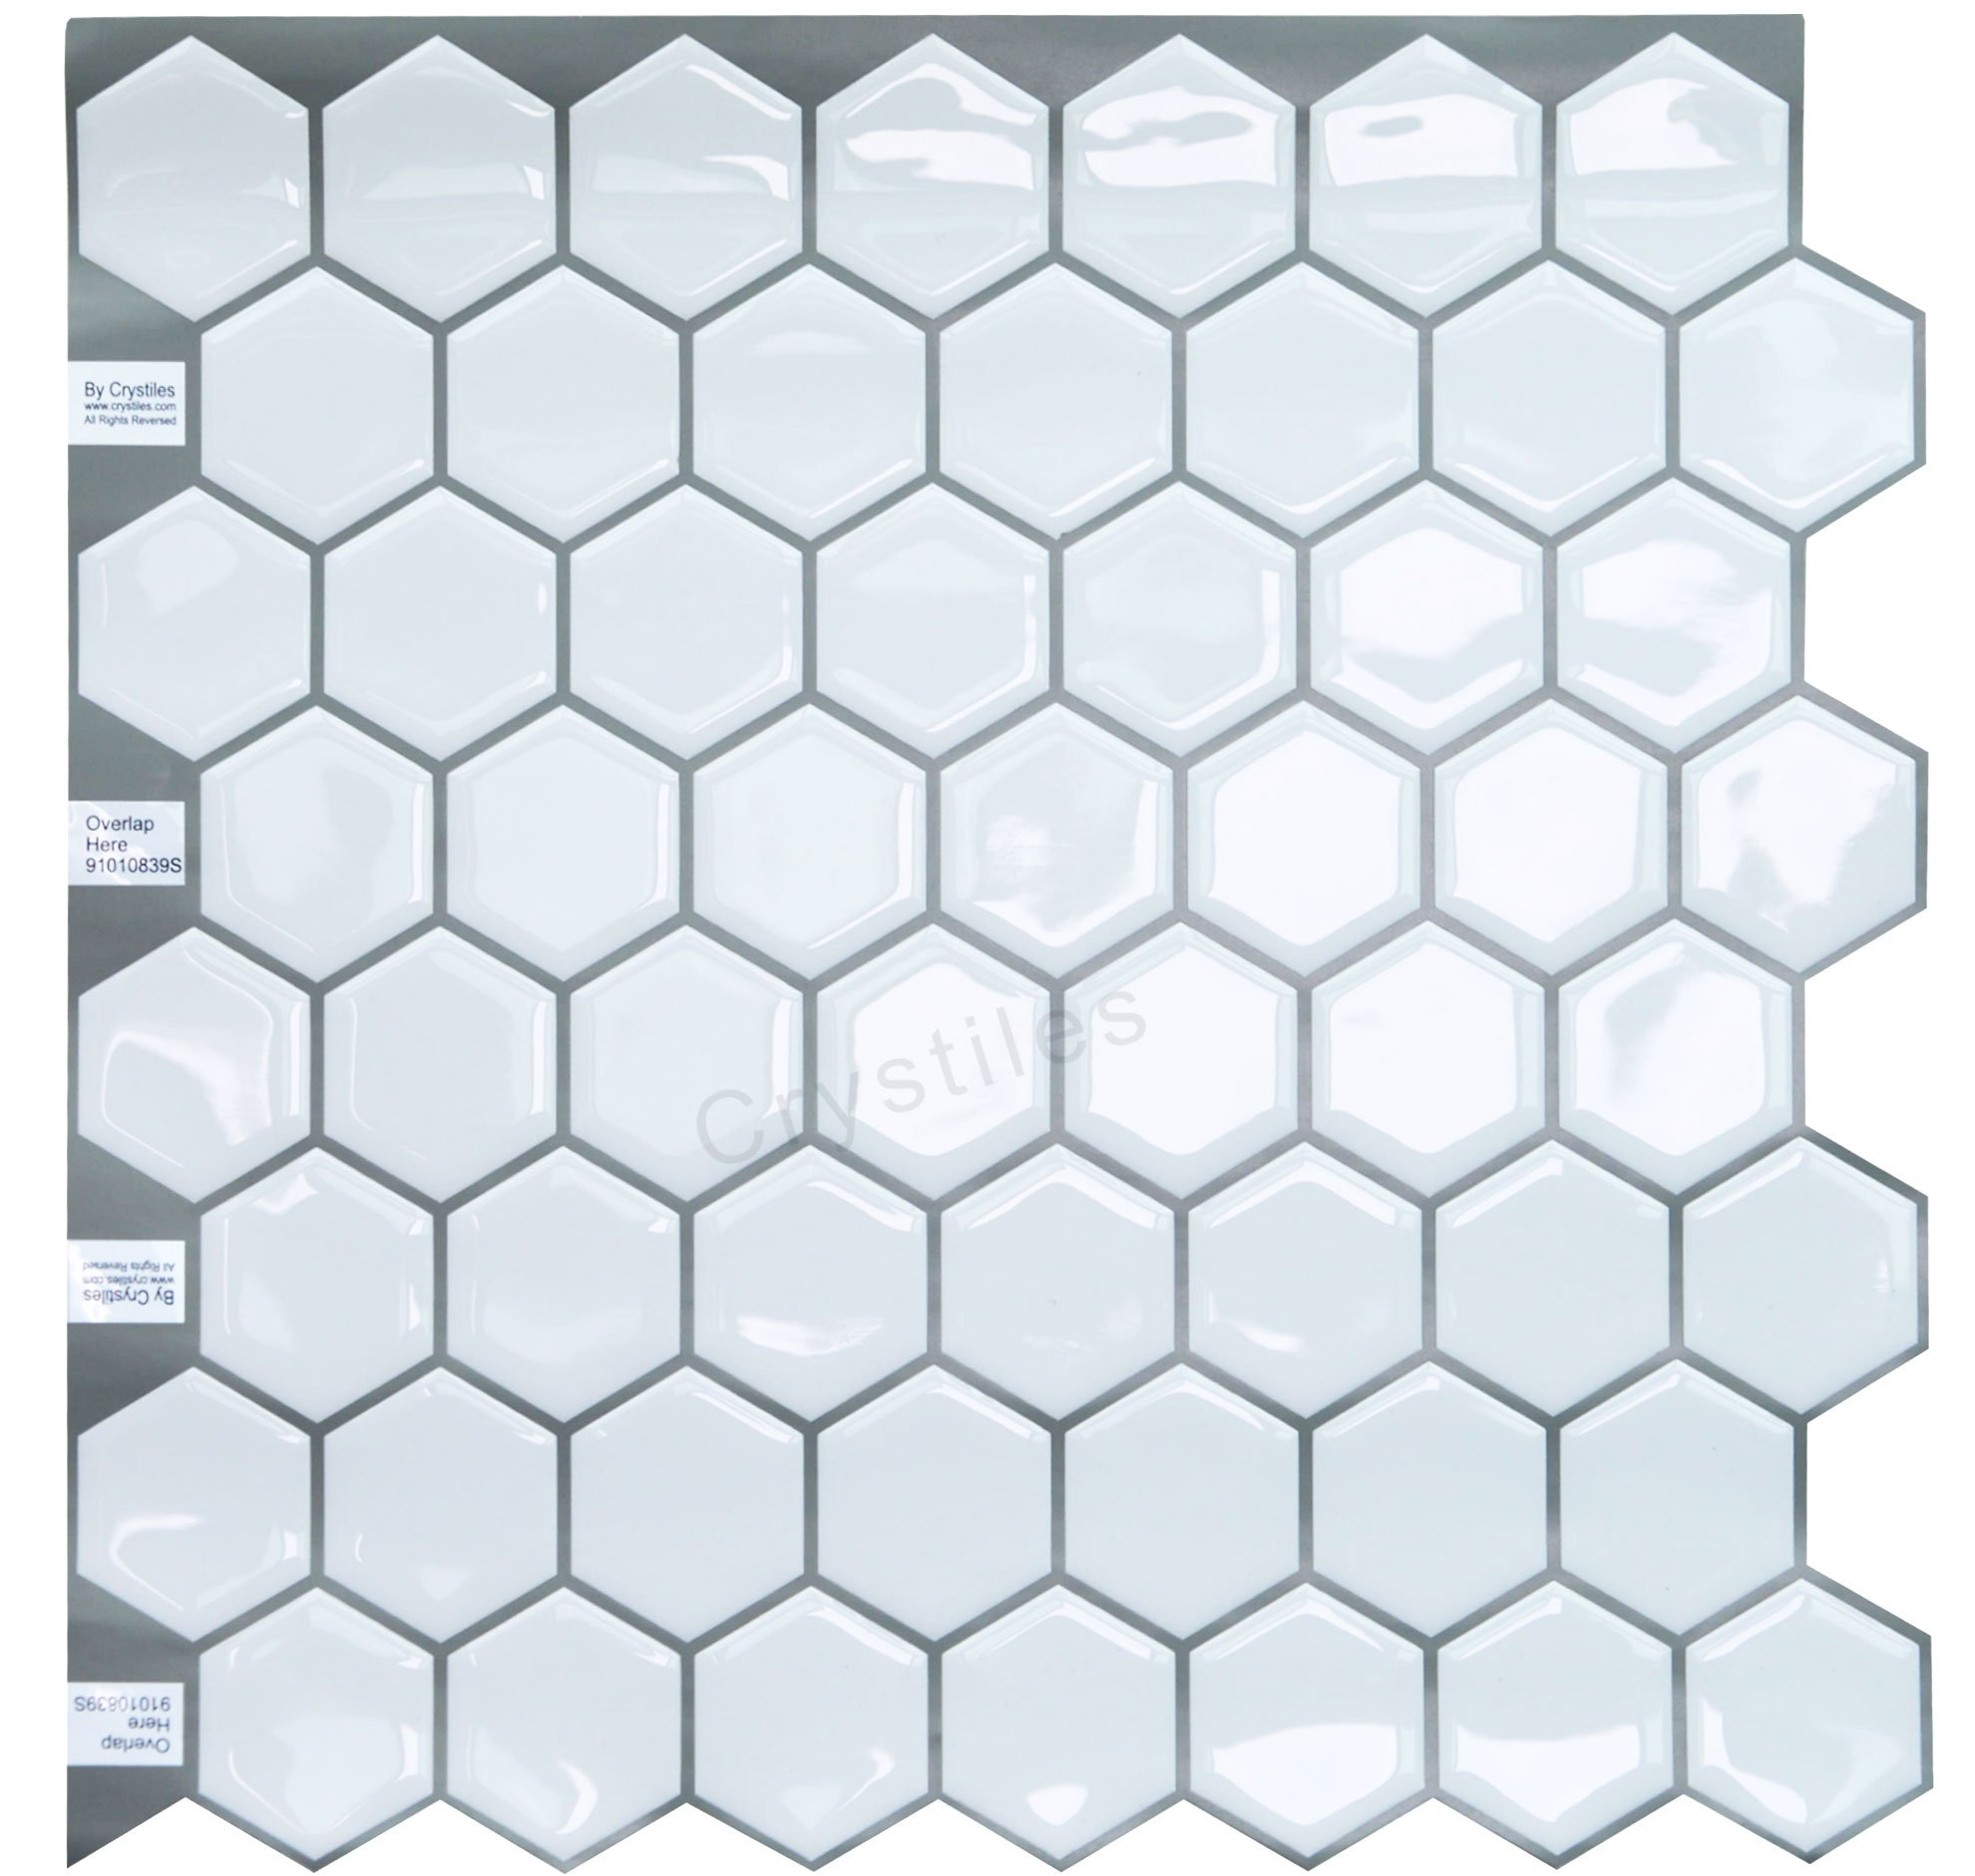 Crystiles peel and stick DIY backsplash tile stick-on vinyl wall tile, perfect backsplash idea for kitchen and bathroom décor projects, Hexagon White?Item #91010839, 10'' X 10'' each, 4 sheets pack by Crystiles